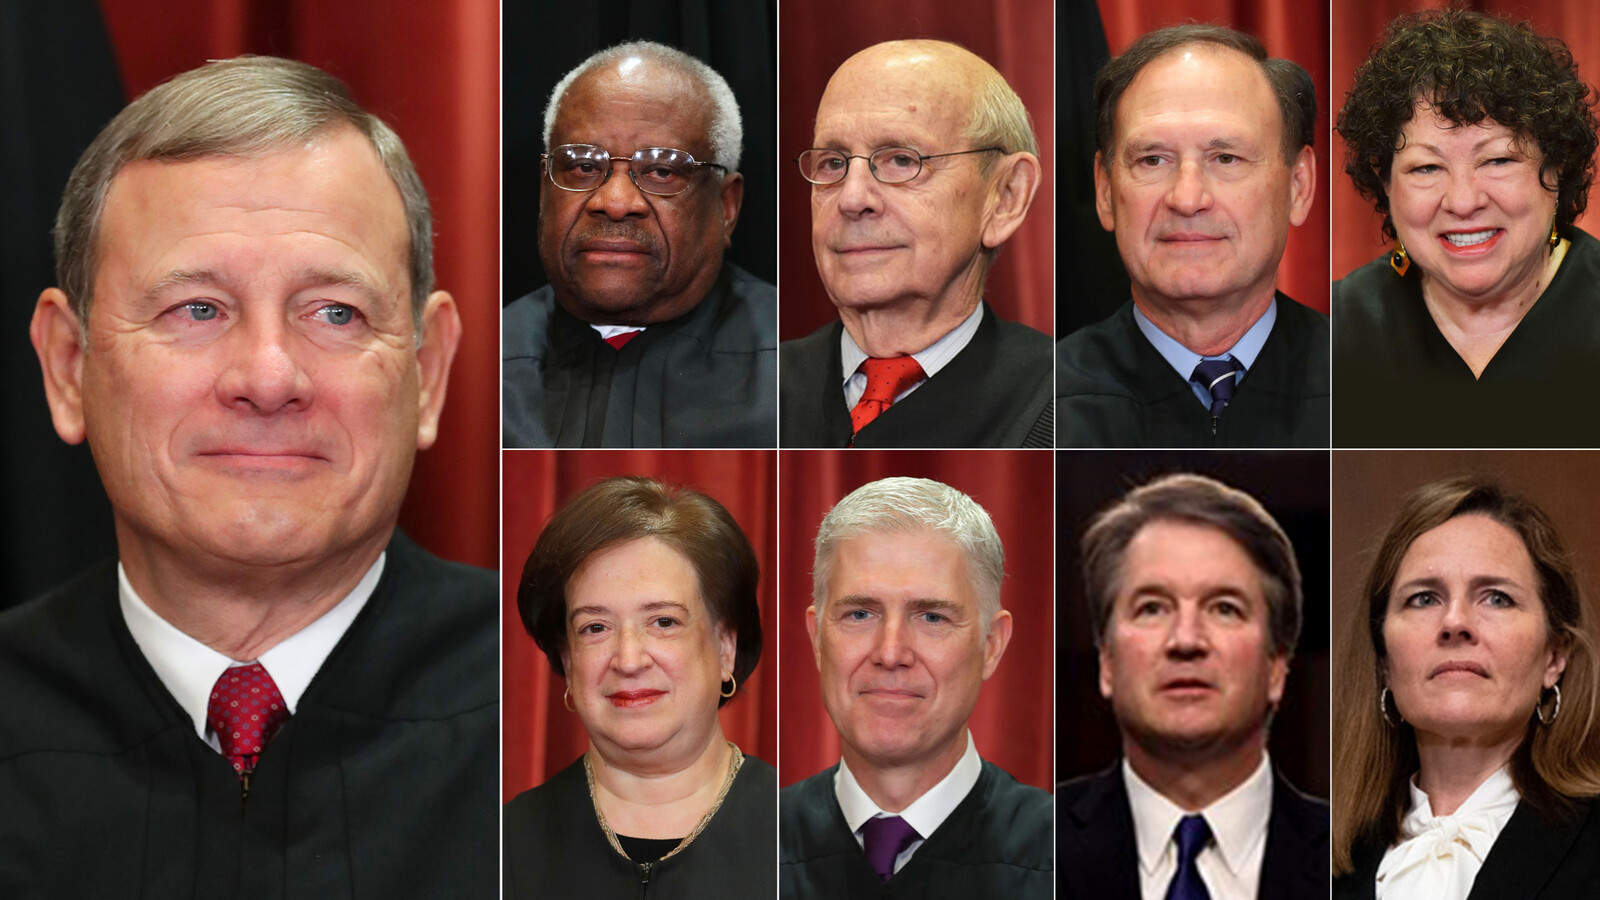 The secret Supreme Court: Late nights, courtesy votes and the unwritten 6-vote rule